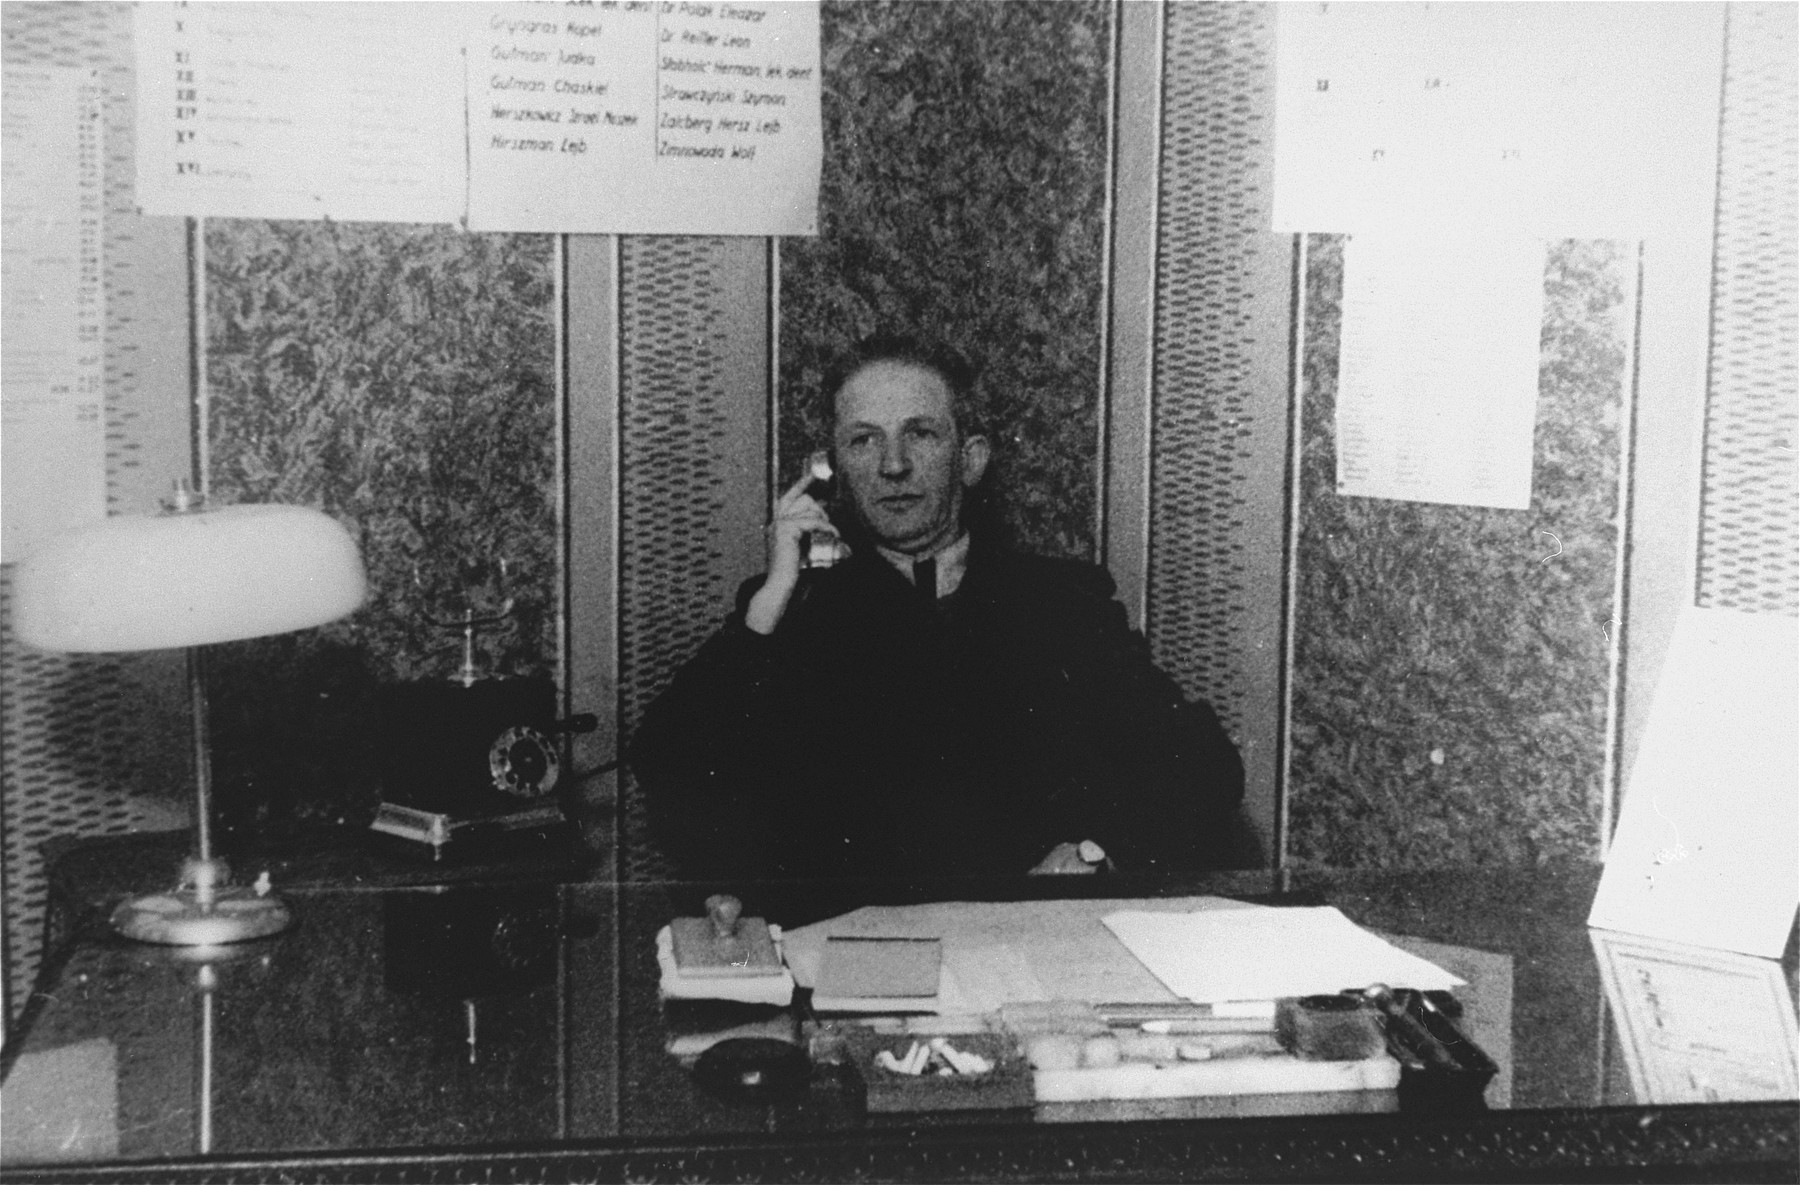 A member of the ghetto administration talks on the telephone while seated at his desk in the office of the Judenrat in the Kielce ghetto.  This photo was one the images included in an official album prepared by the Judenrat of the Kielce ghetto in 1942.